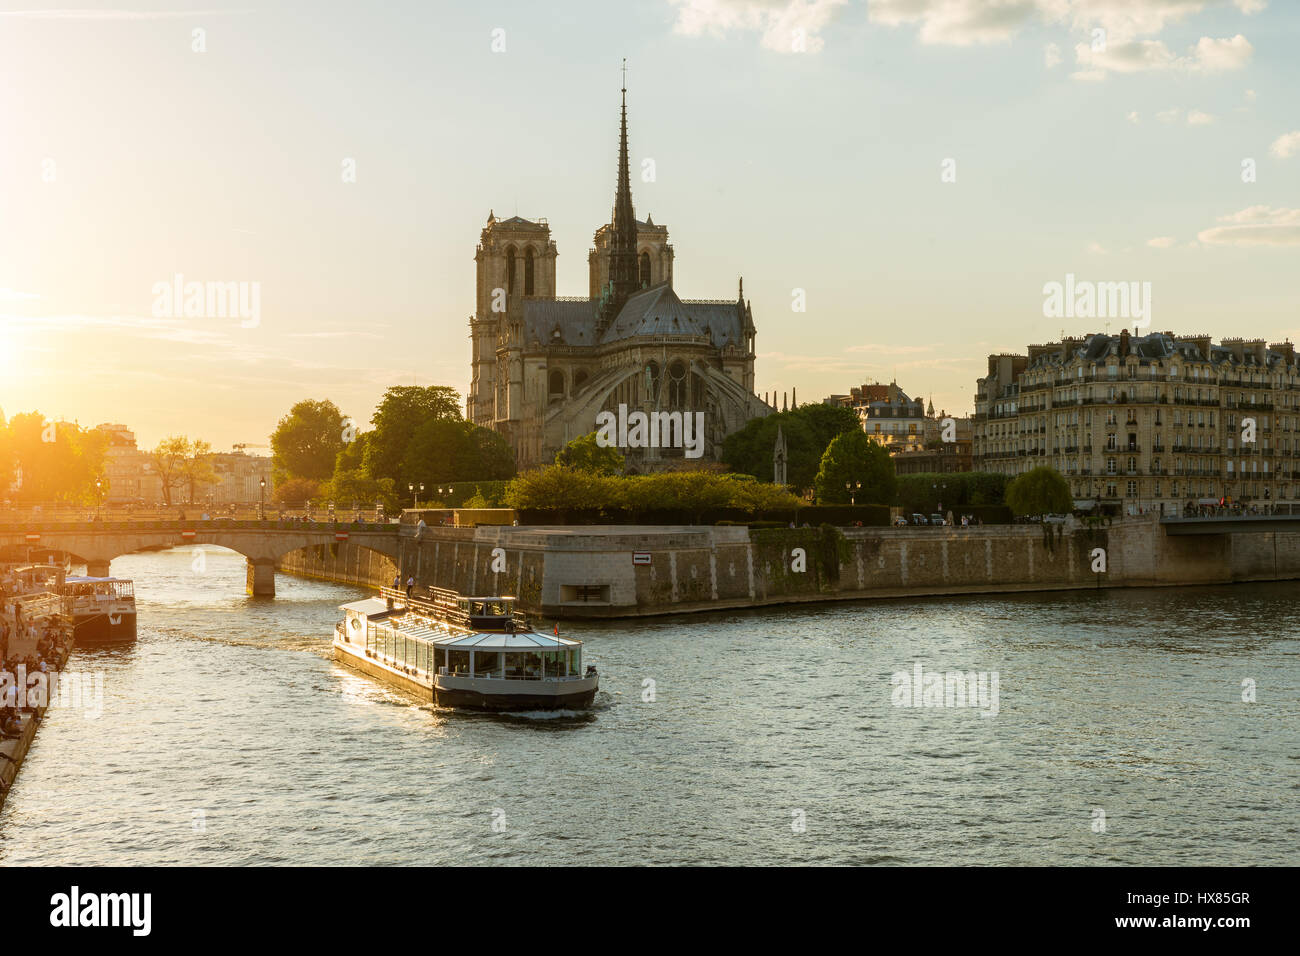 Notre Dame de Paris with cruise ship on Seine river in Paris, France - Stock Image